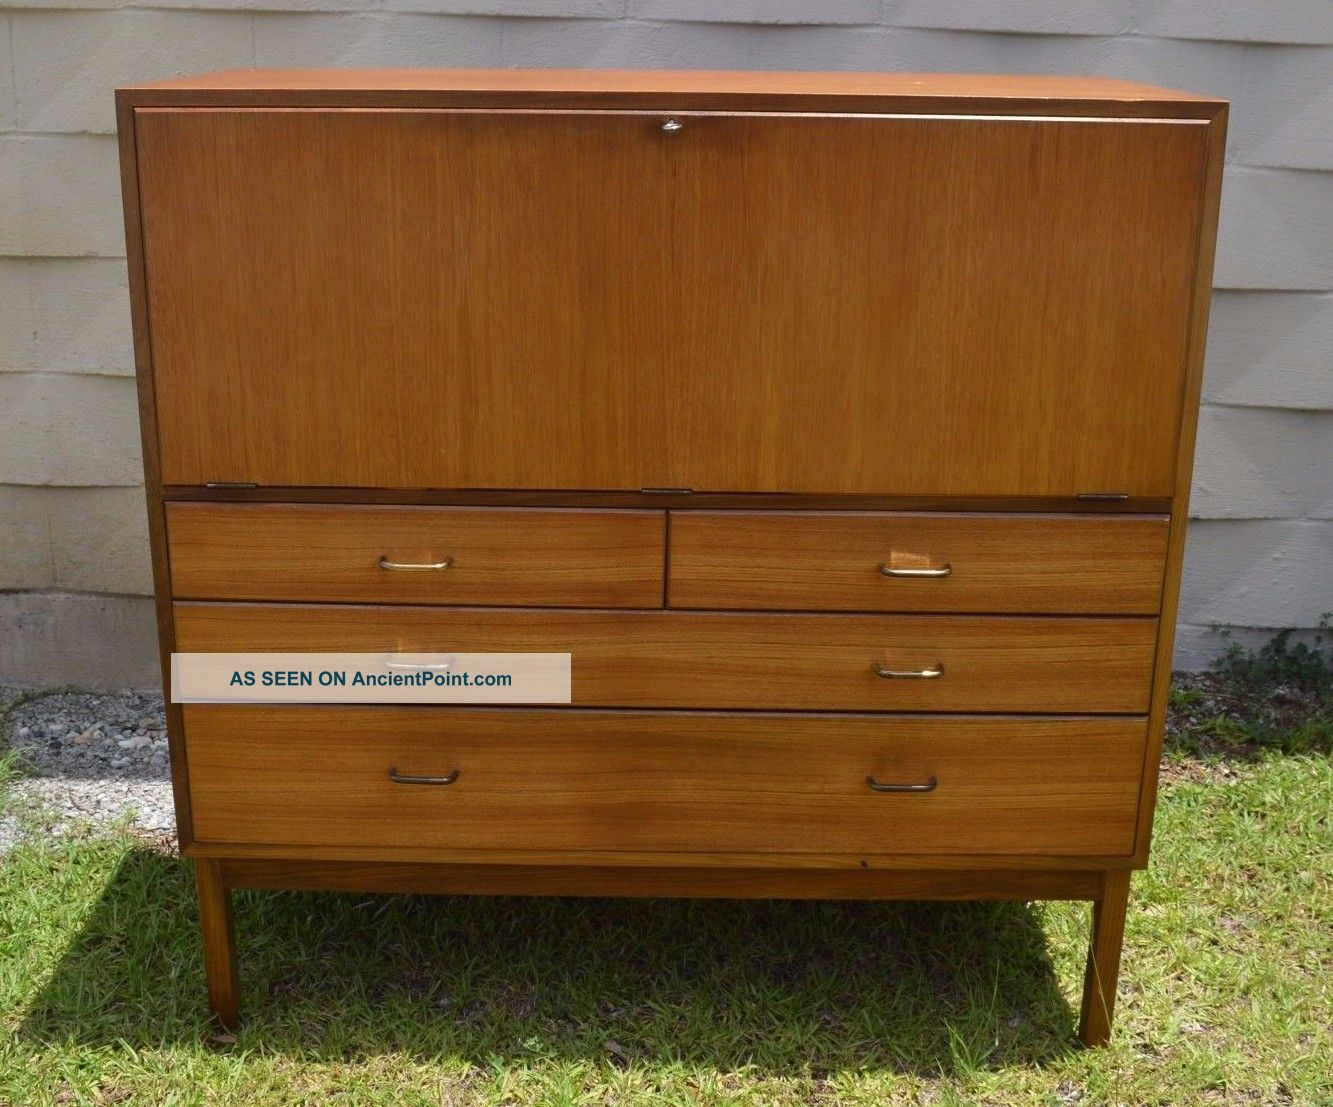 Teak Mid - Century Modern Scandinavian Design Sideboard Drop Front Desk 4 Drawers Post-1950 photo